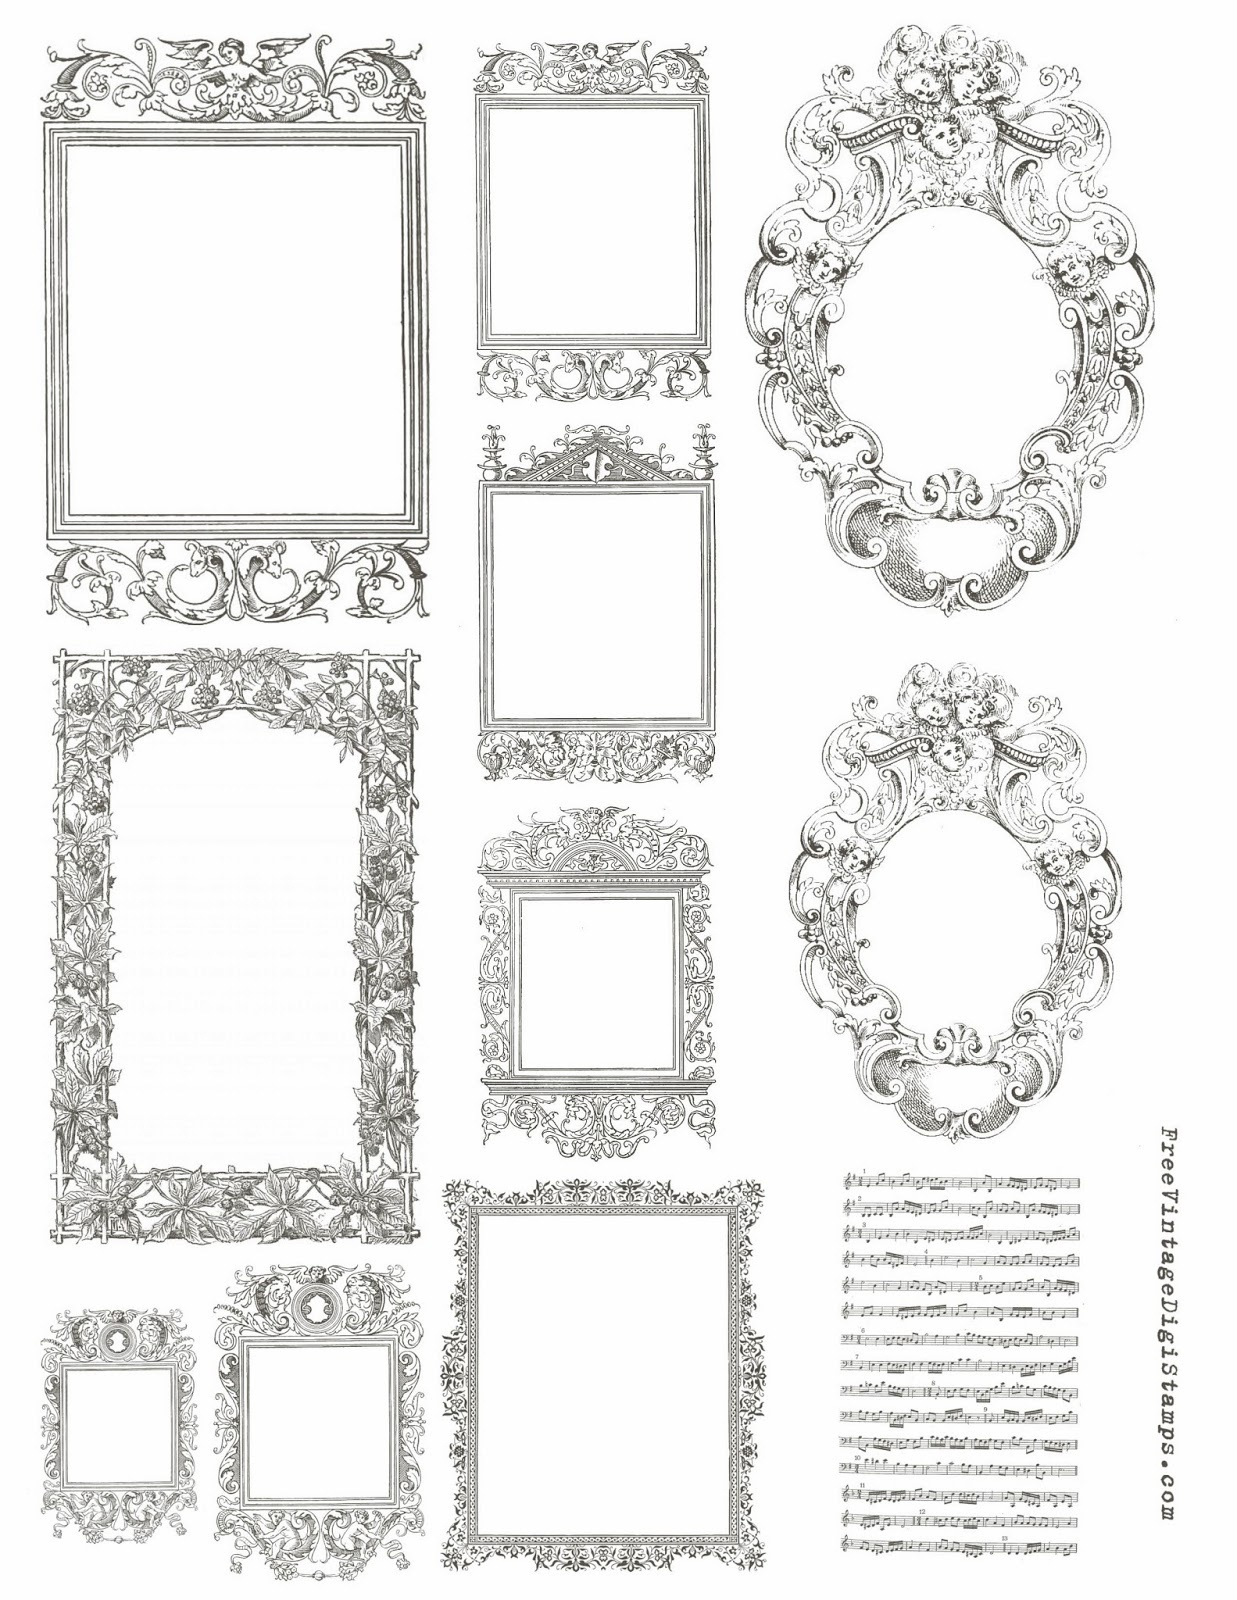 Free Vintage Digital Stamps**: Free Printable - Ornate Frames - Free Printable Photo Frames